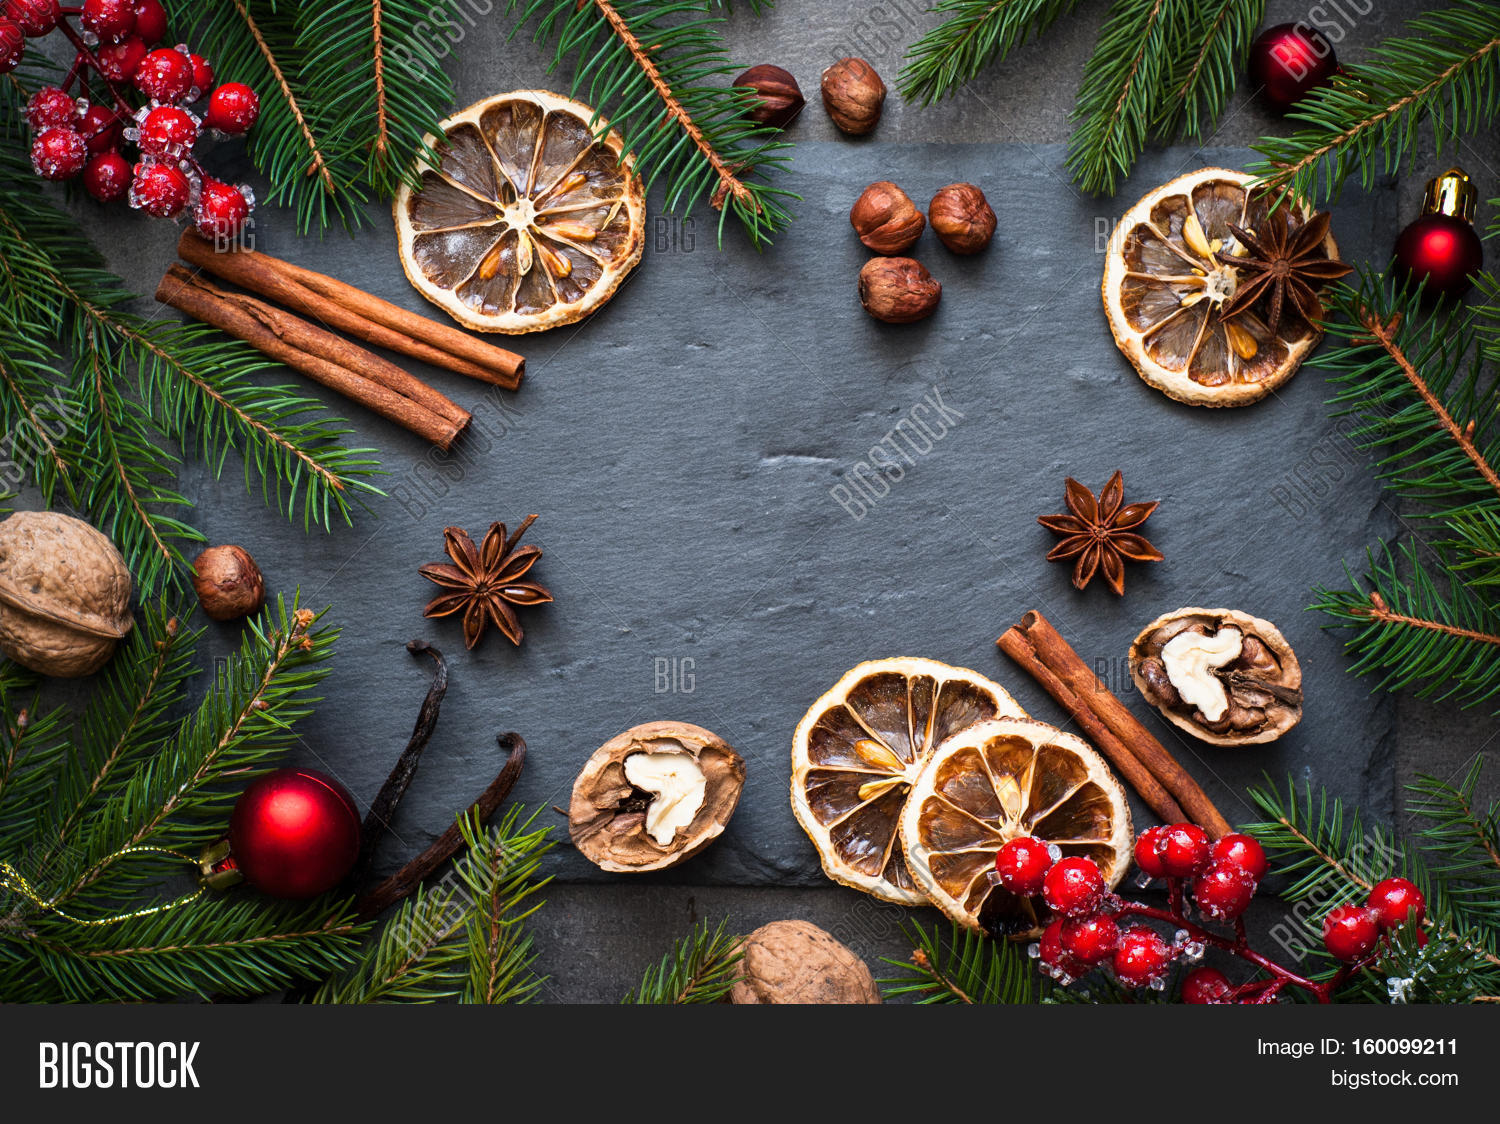 Christmas Top View.Christmas Spices Image Photo Free Trial Bigstock